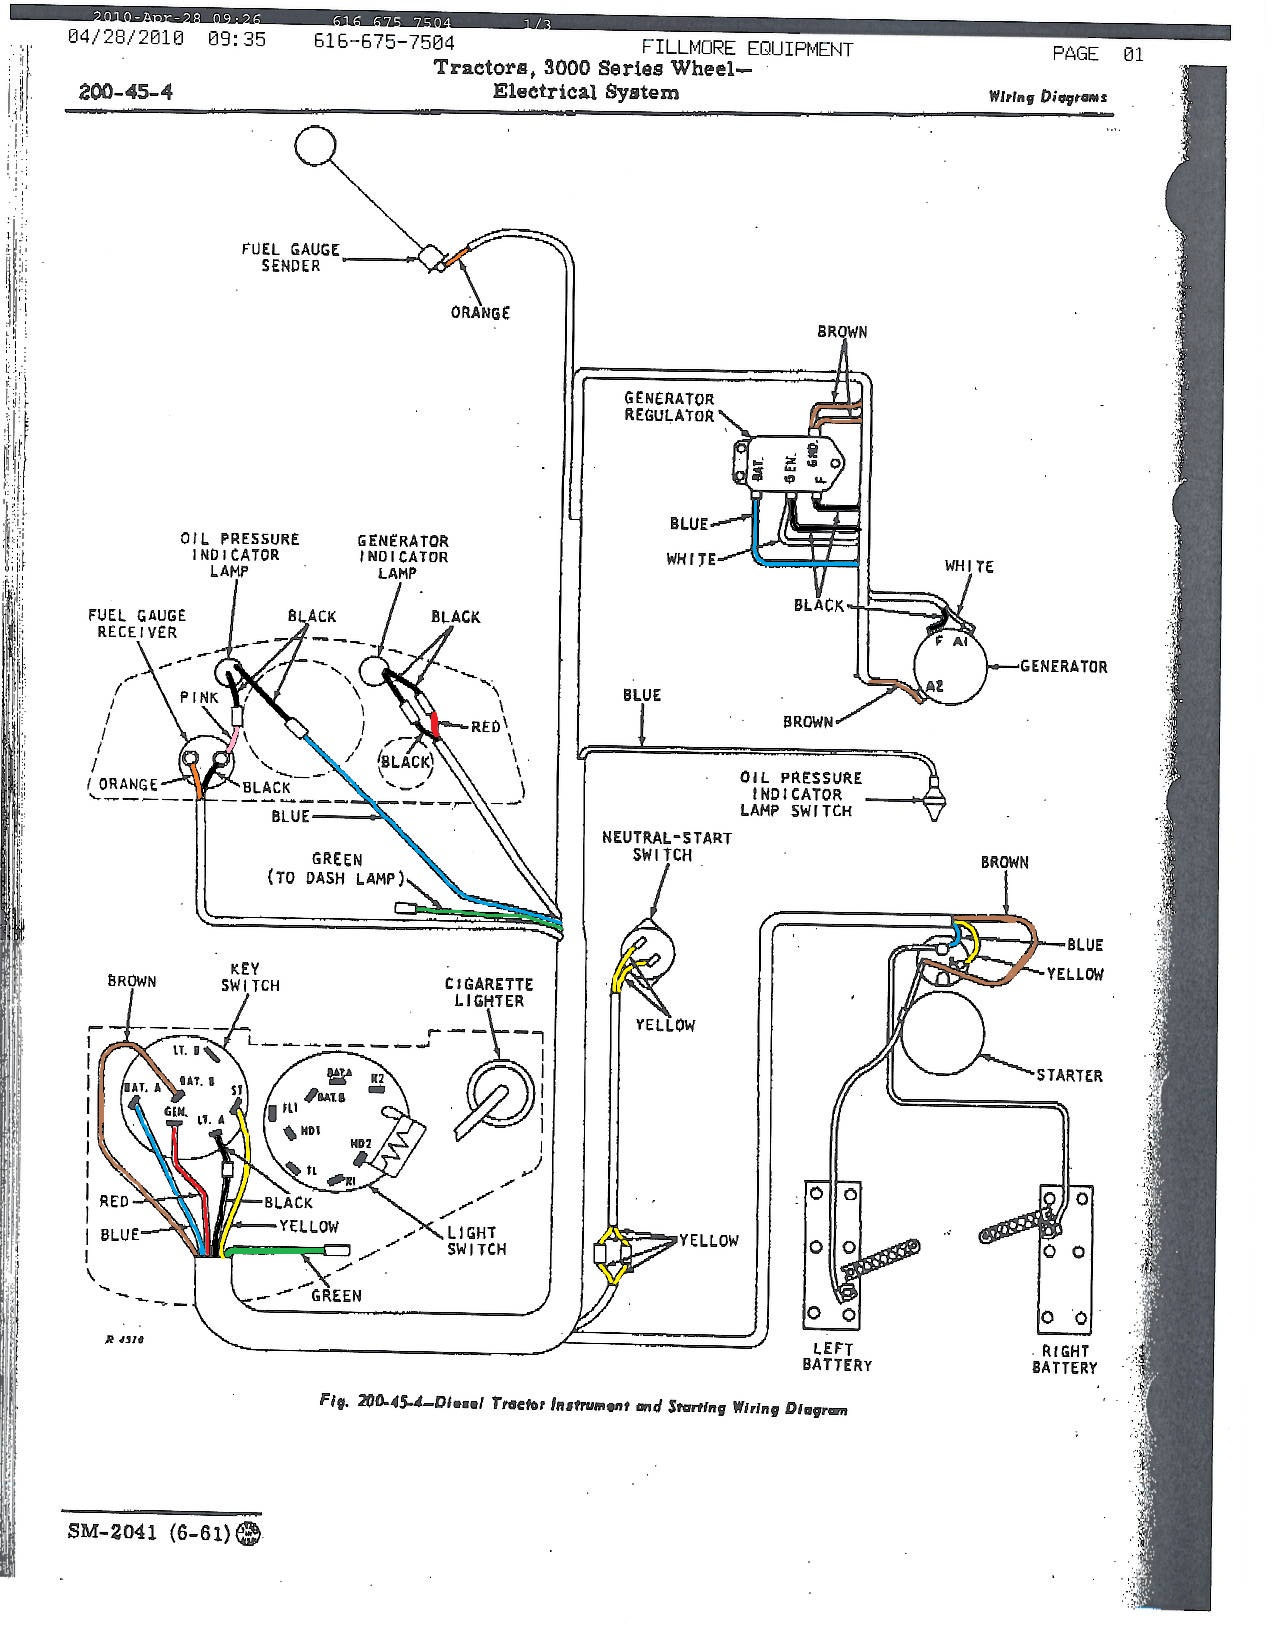 John Deere 2020 Tractor Wiring Diagram - Wiring Diagram Recent faint-leader  - faint-leader.cosavedereanapoli.it | John Deere 3020 24 Volt Wiring Diagram |  | faint-leader.cosavedereanapoli.it